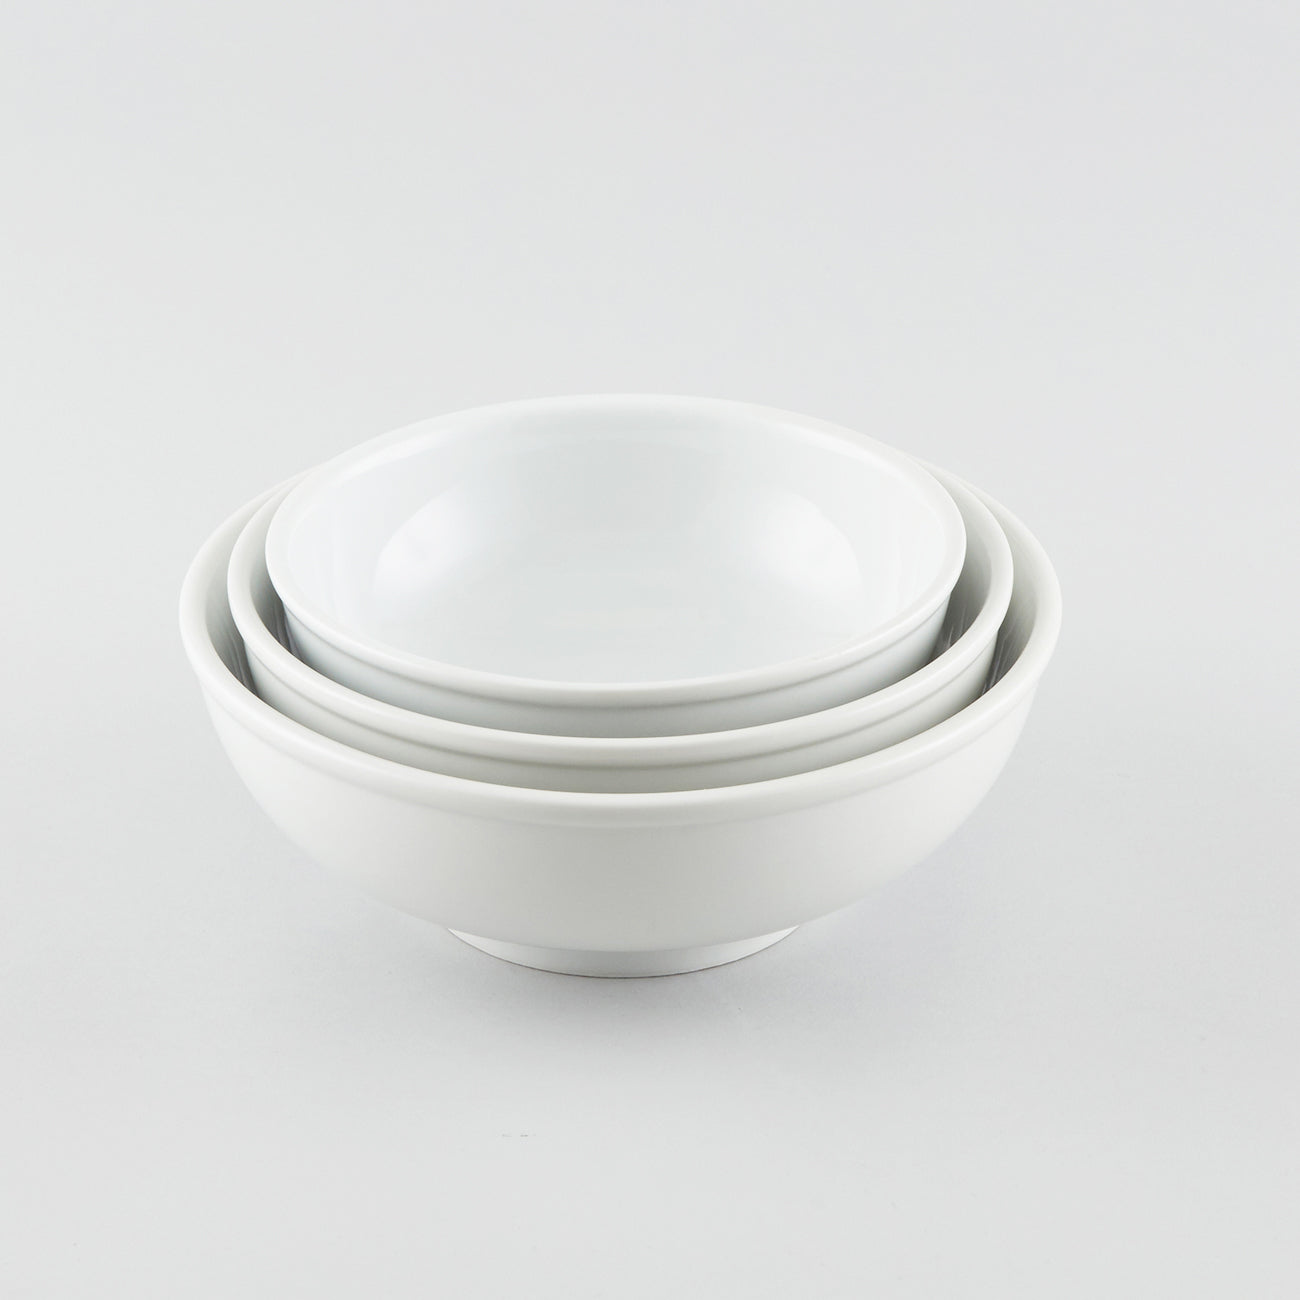 Standard Rounded Soup Bowl - White (L) 56 oz